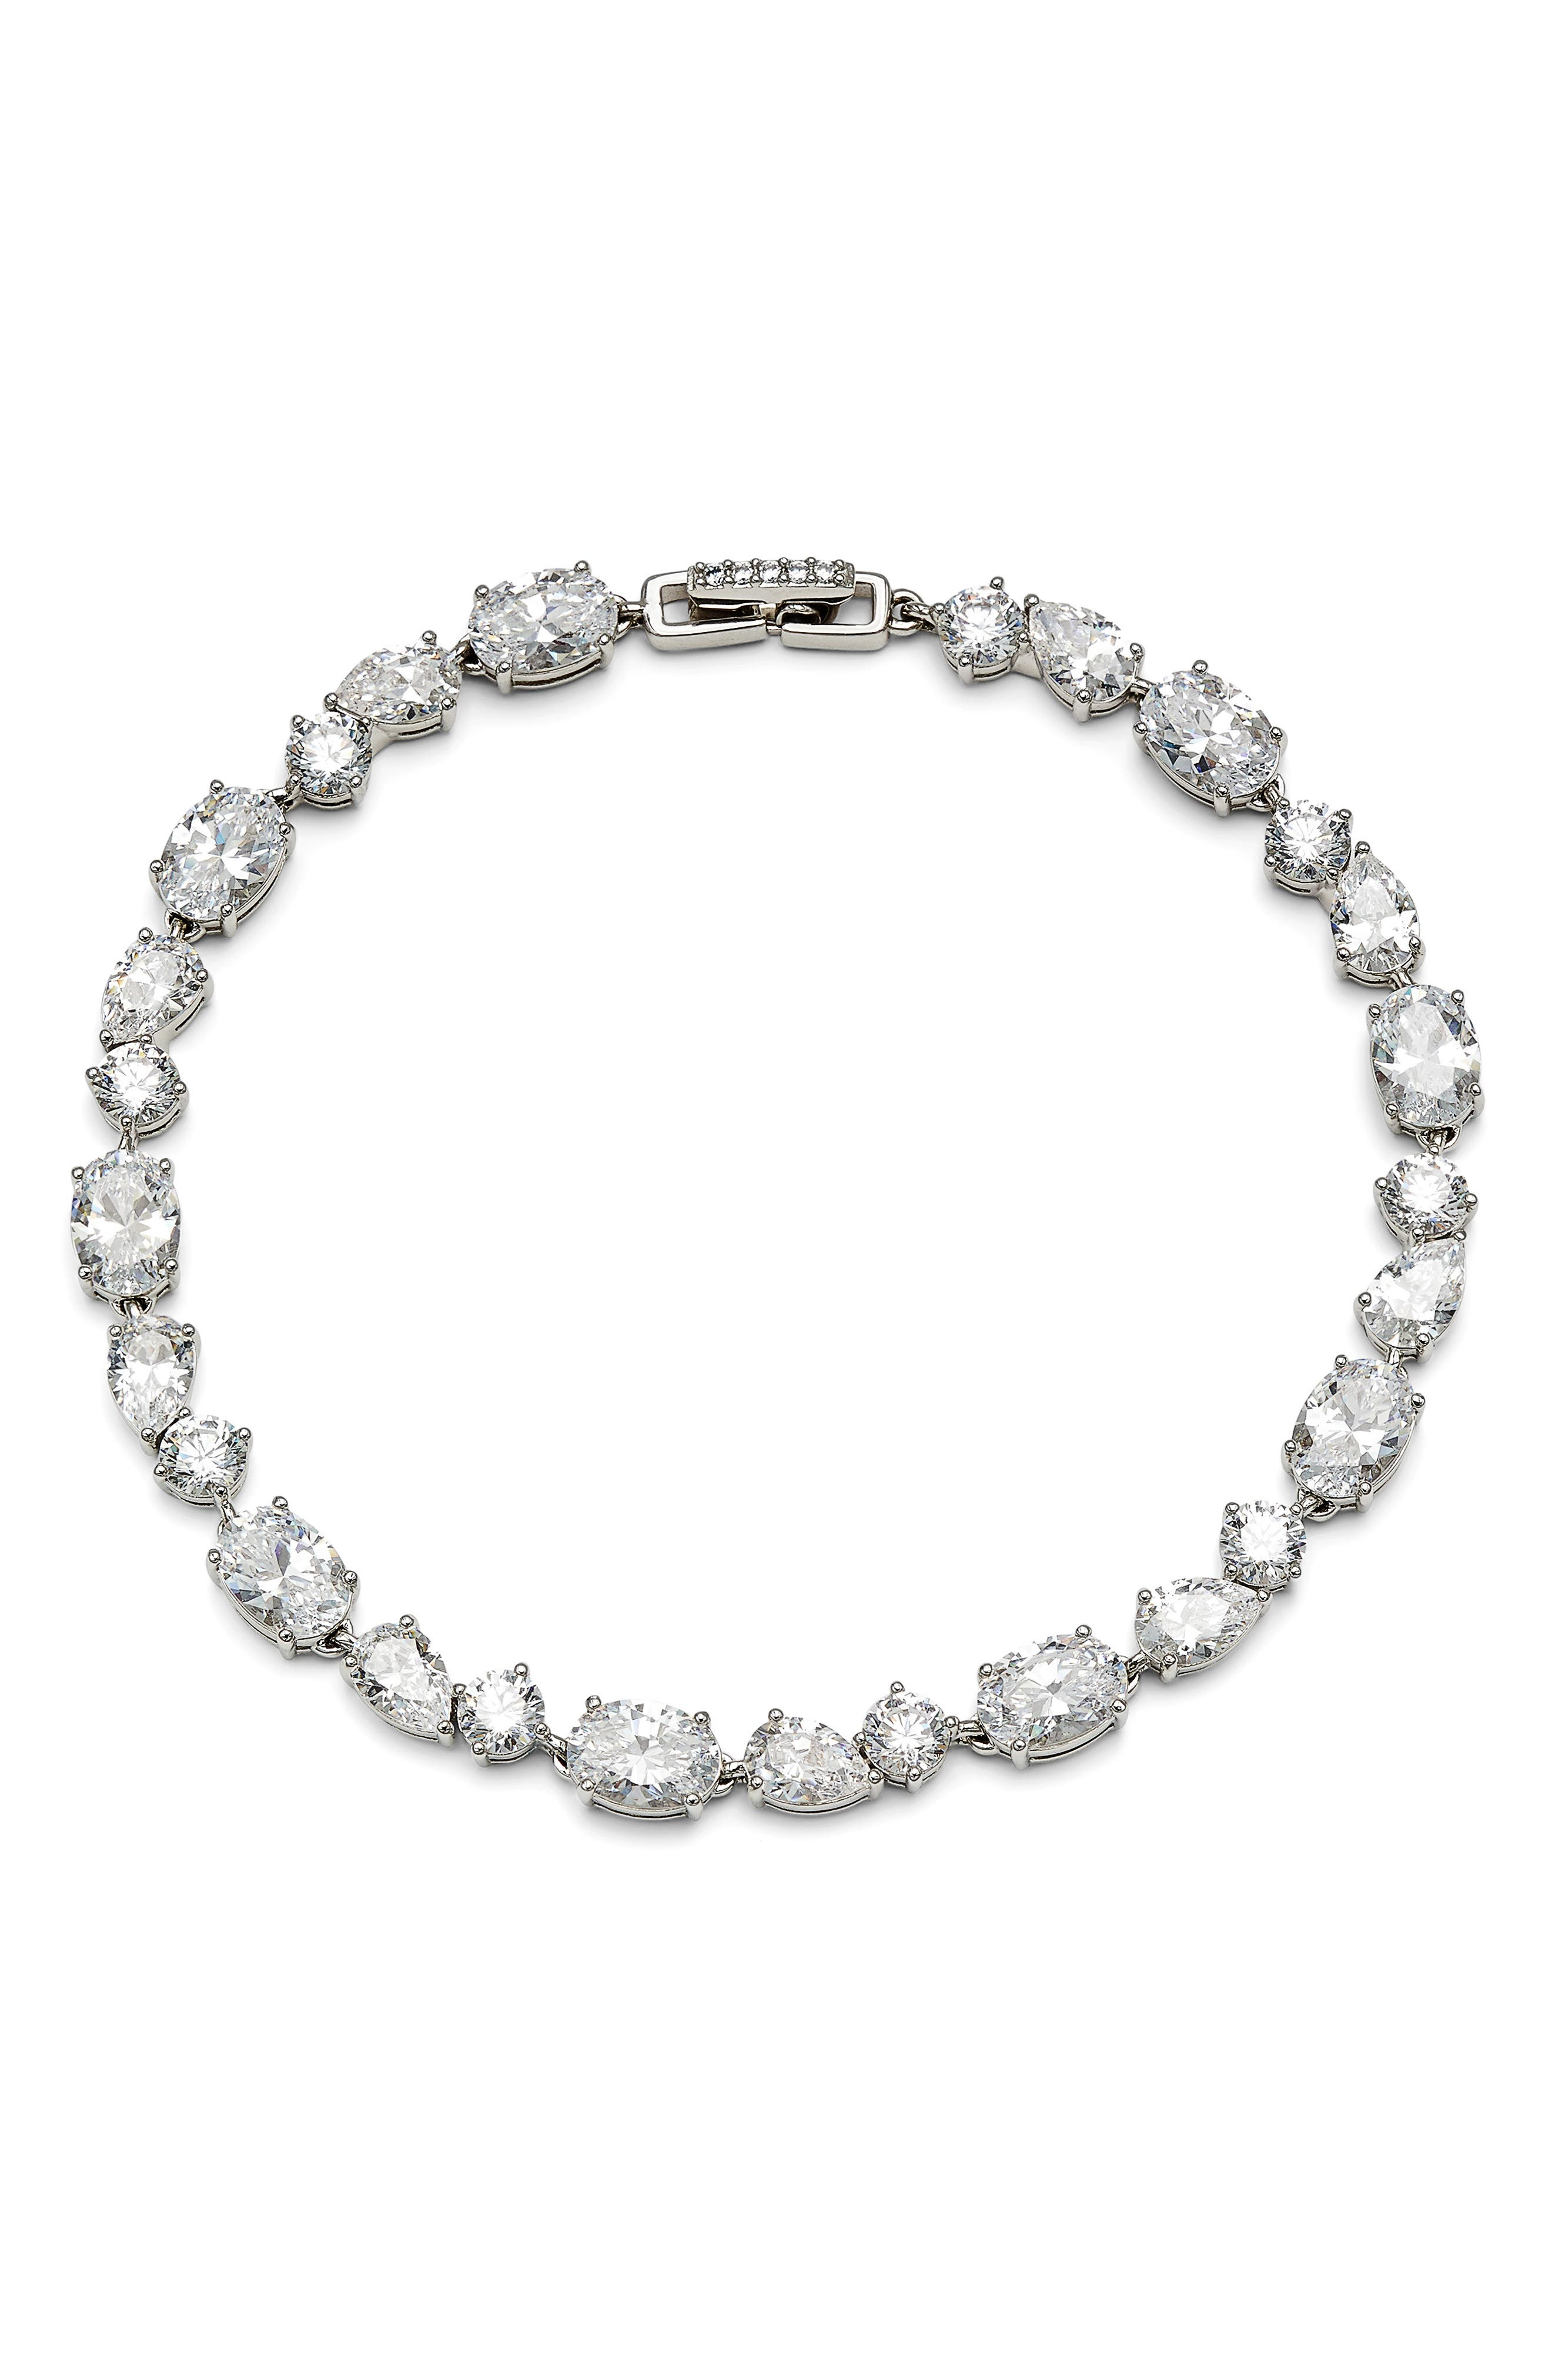 A mix of twinkling shapes enlivens this hand-polished cubic zirconia line bracelet that adds a delightful dash of sparkle to your day-to-night looks. Style Name: Nadri Chloe Cubic Zirconia Line Bracelet. Style Number: 6106111. Available in stores.